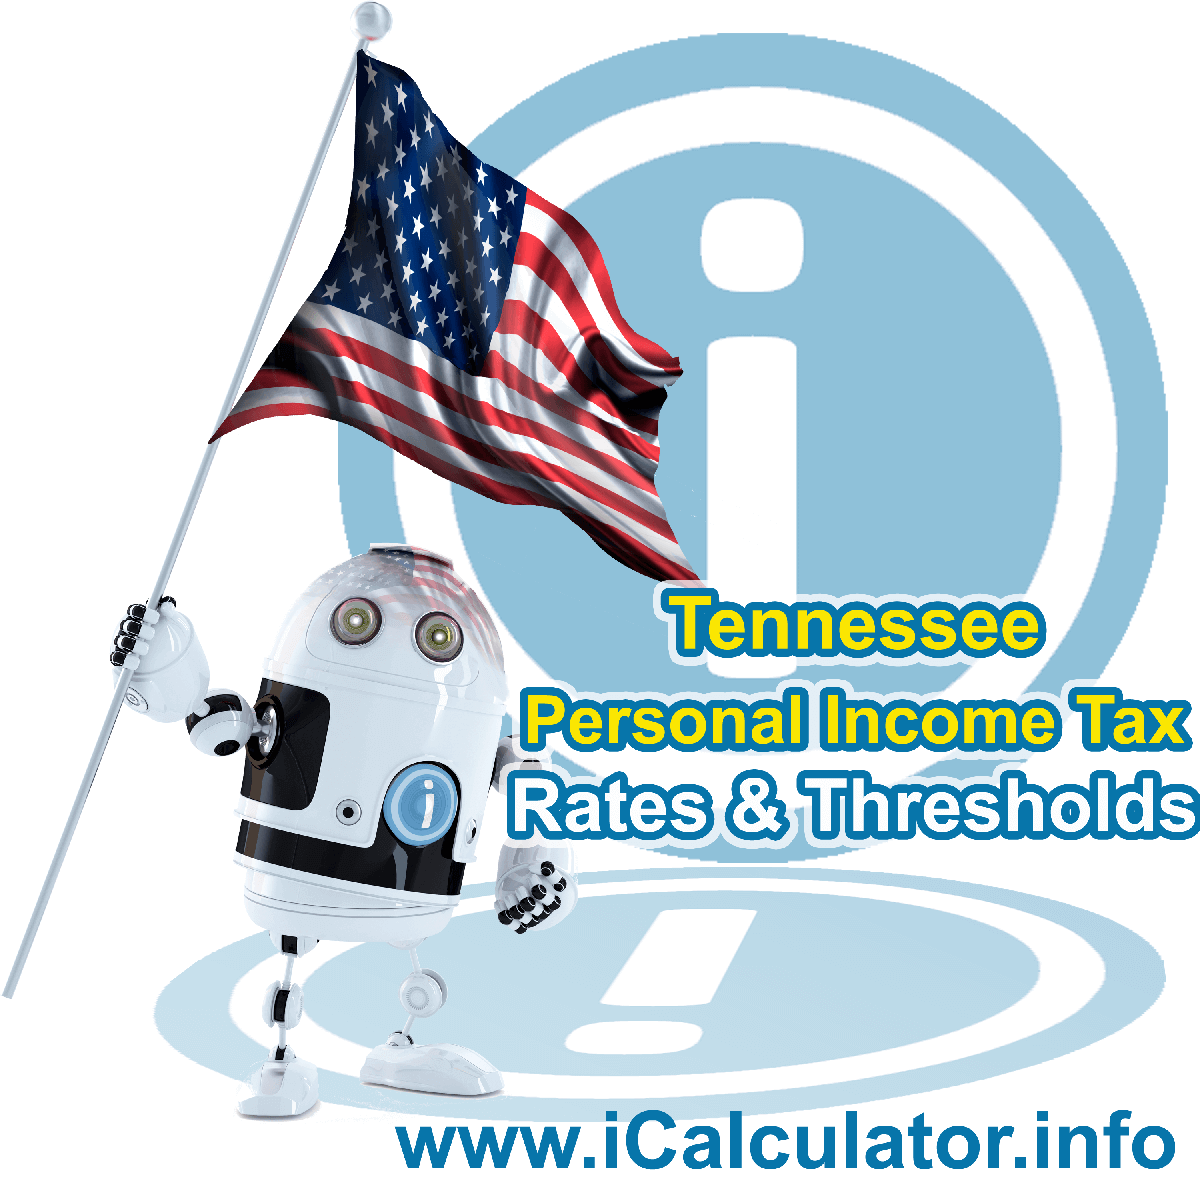 Tennessee State Tax Tables 2013. This image displays details of the Tennessee State Tax Tables for the 2013 tax return year which is provided in support of the 2013 US Tax Calculator